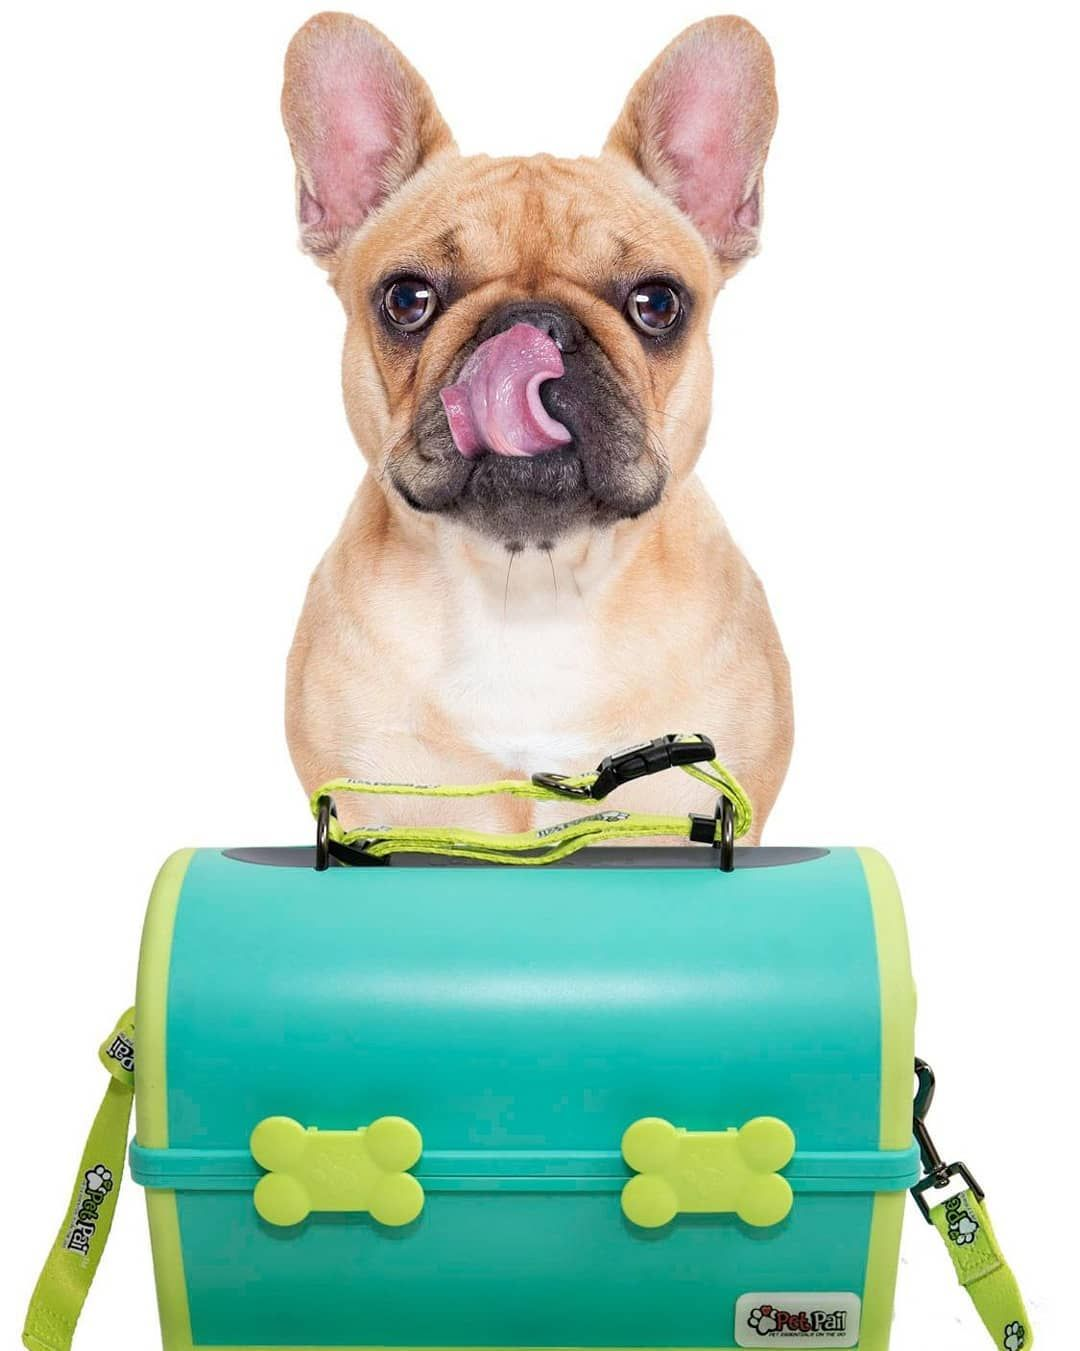 My Pet Pail Petapproved Order Today Mypetpail Com Shop Teal Yellow Pet Pets Petlife Petsofinstagram Pettravel Pet Travel Pets Pet Life